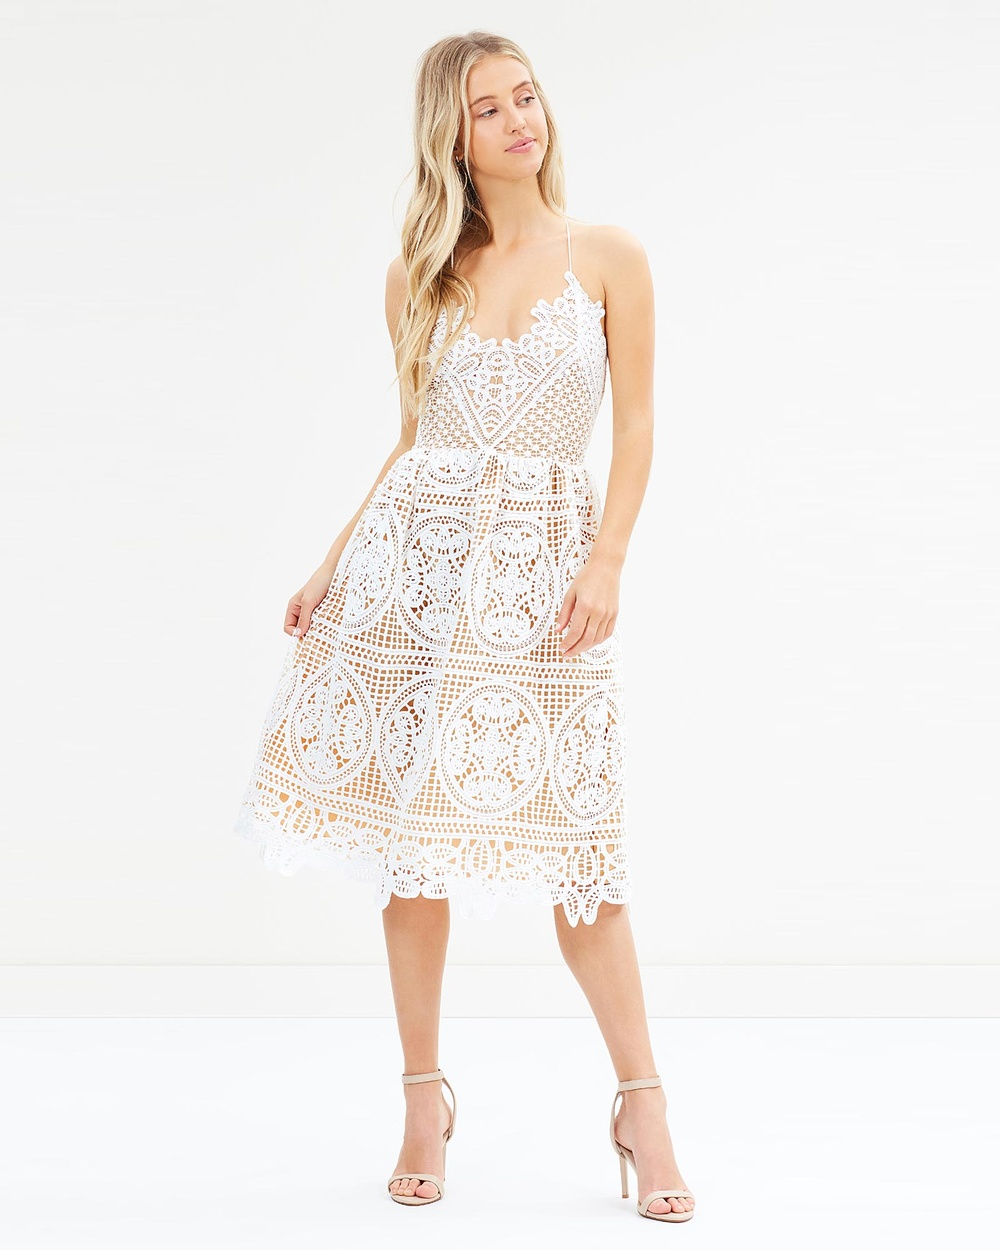 Twosister's The Label Annabelle Dress Dresses White Annabelle Dress